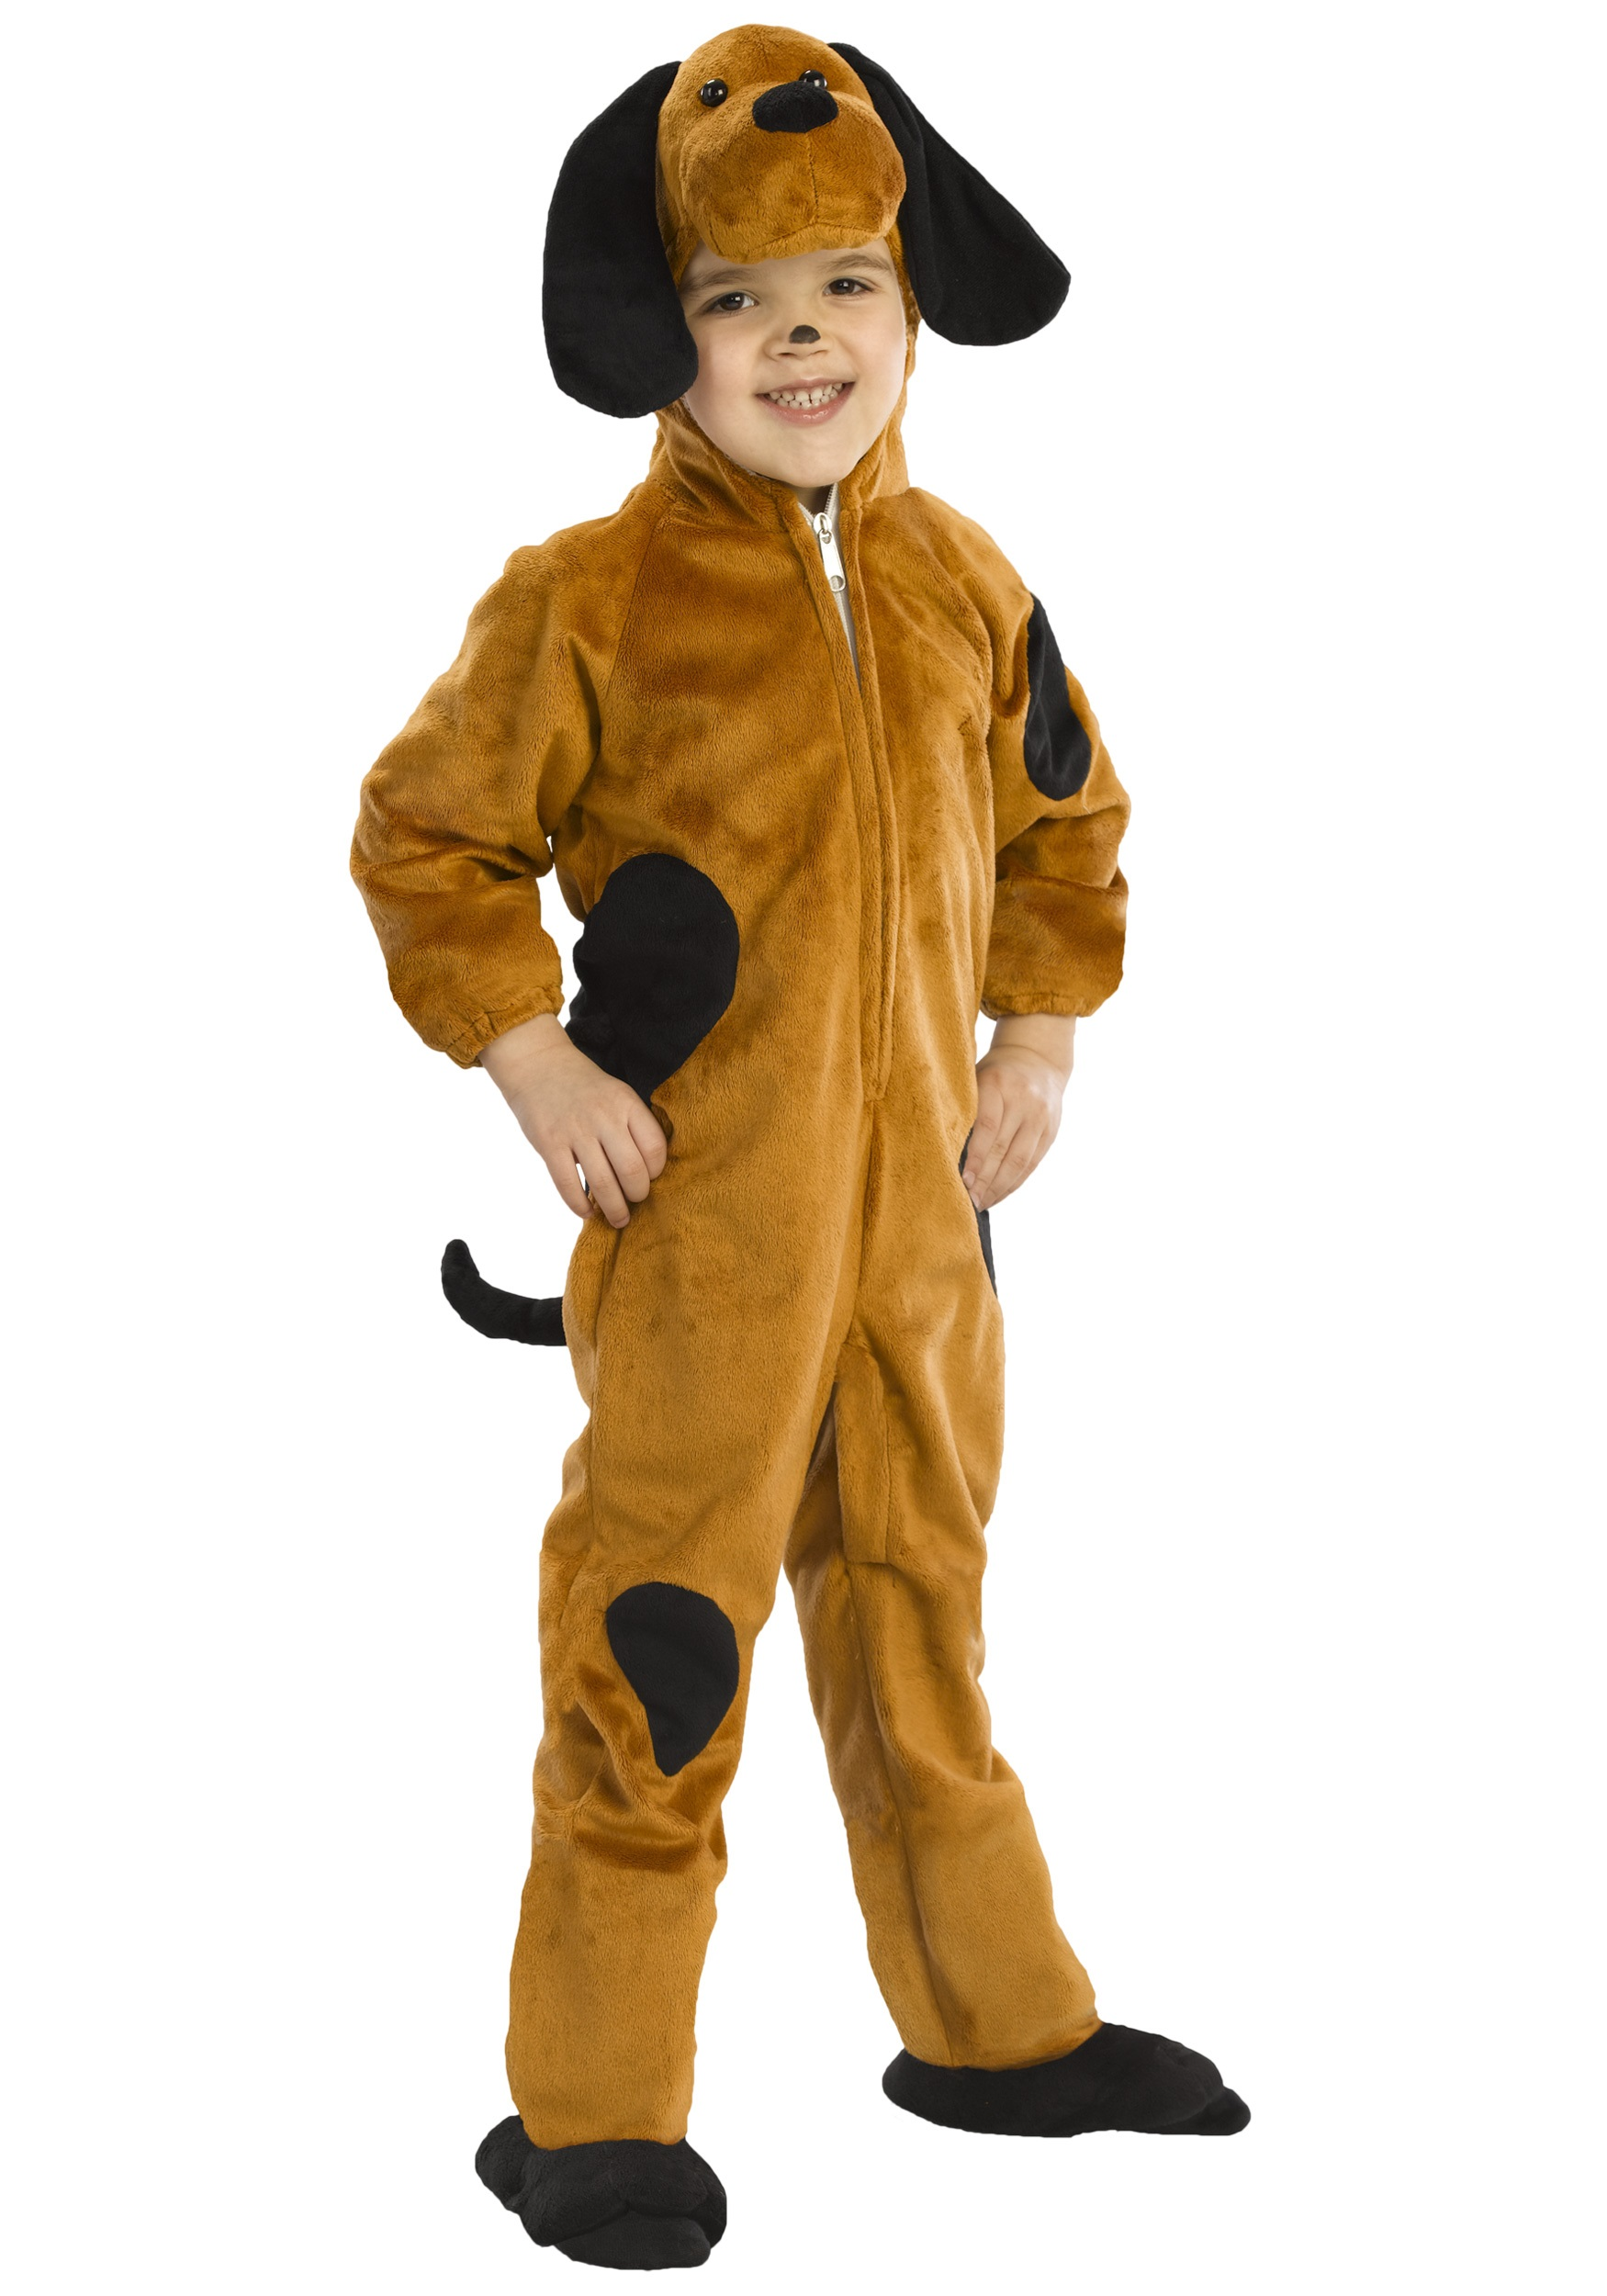 Toddler Tan Dog Costume  sc 1 st  Halloween Costumes & Toddler Tan Dog Costume - Halloween Costumes